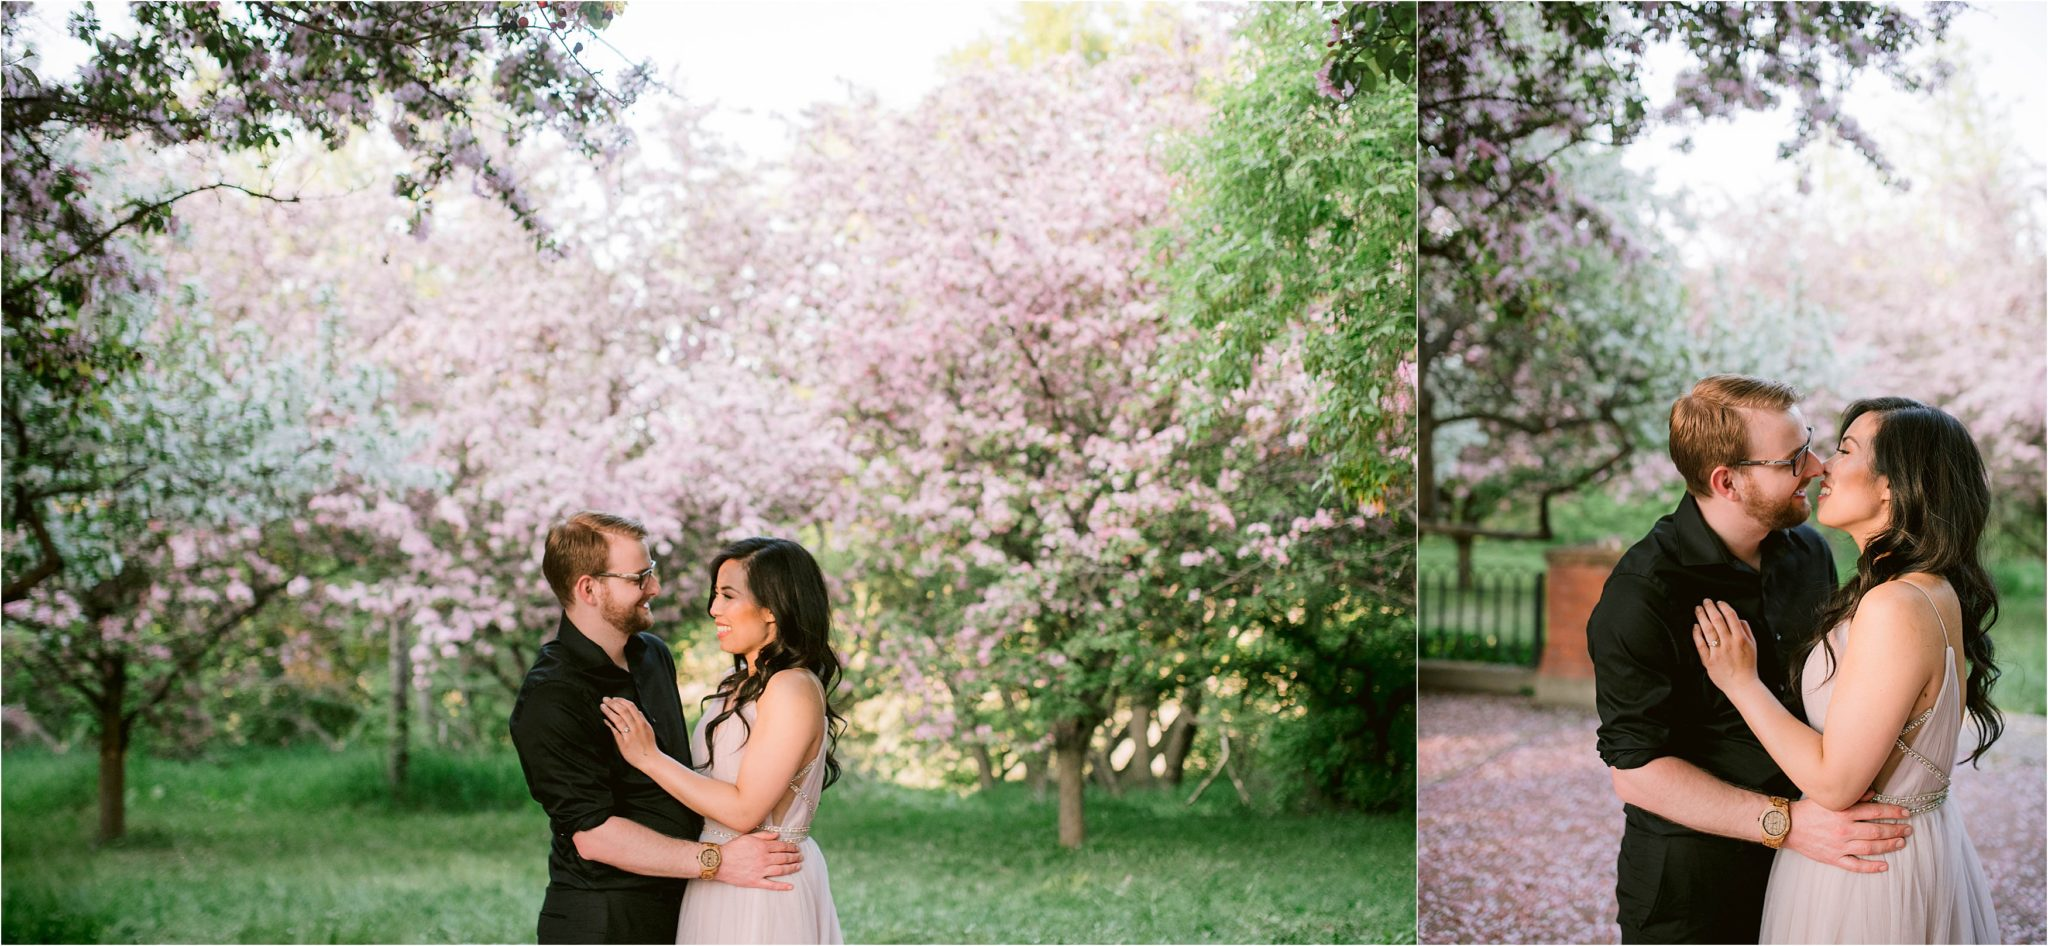 Romantic Cherry Blossoms Engagement Photos in Edmonton